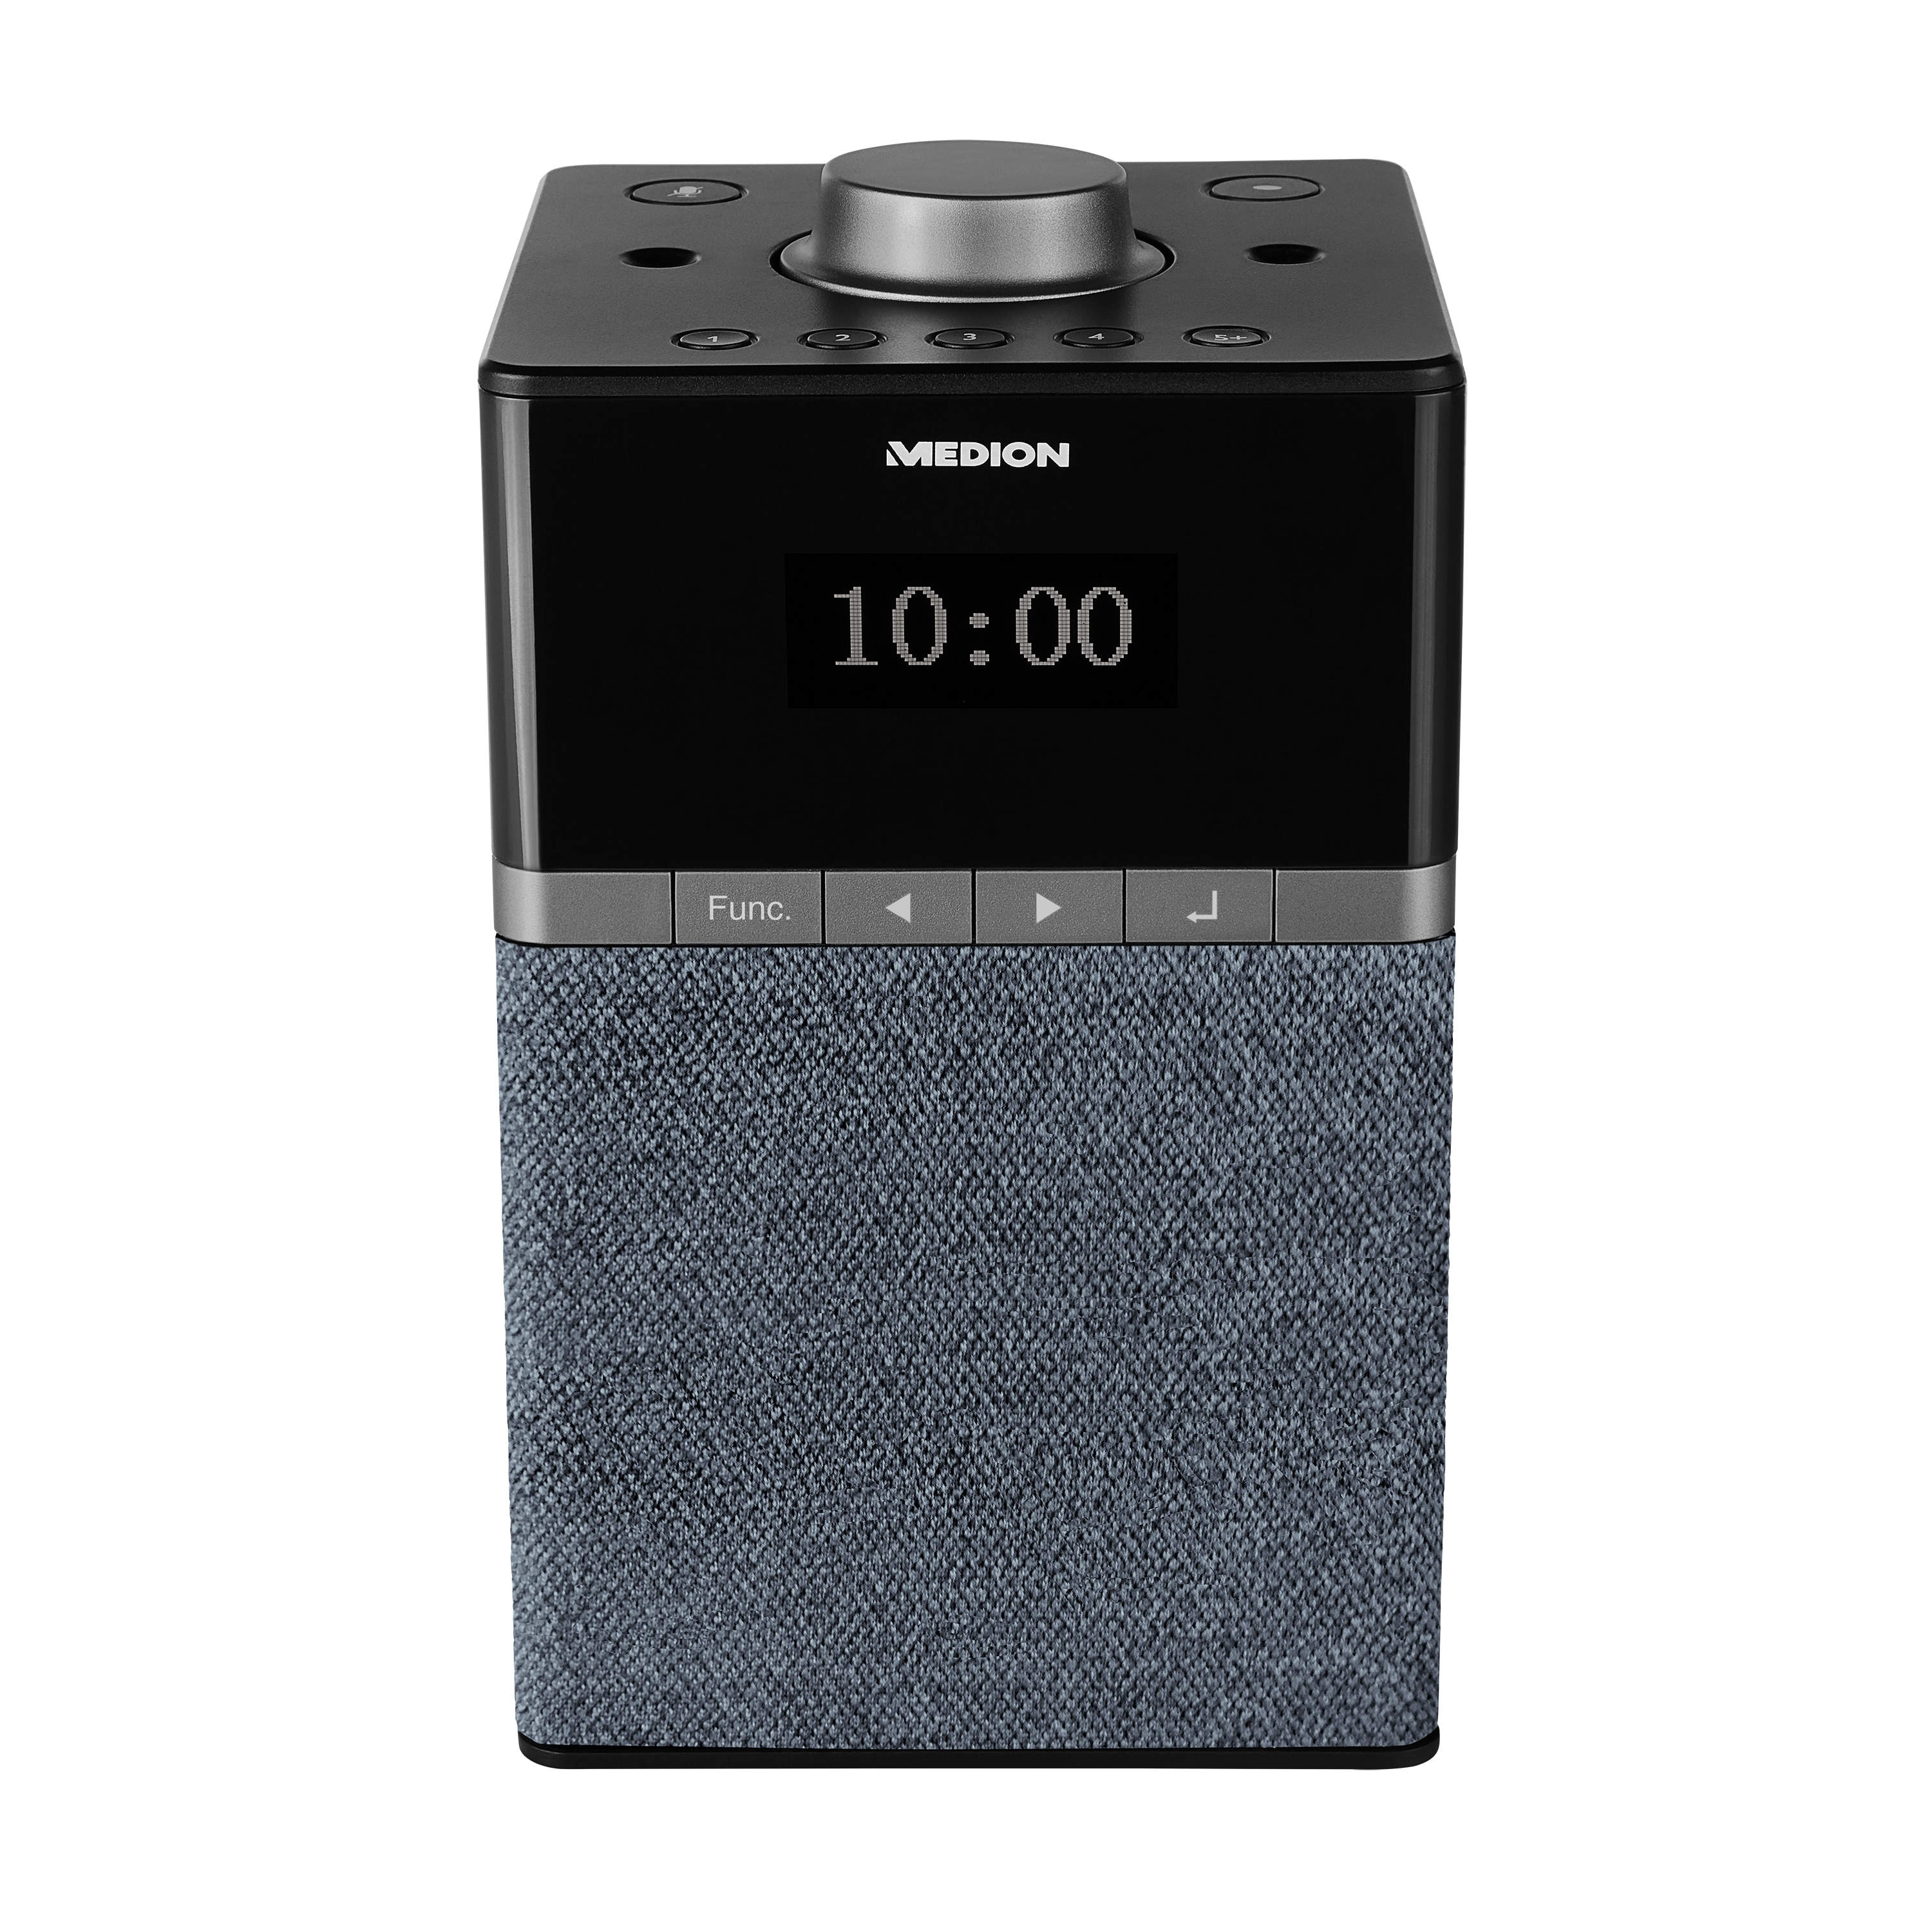 MEDION® LIFE® P66130 WLAN DAB+ Radio mit Amazon Alexa, 4 W RMS, Dot Matrix Display, DAB+, PLL UKW, DLNA, Spracherkennung, Multiroom, Musikstreaming